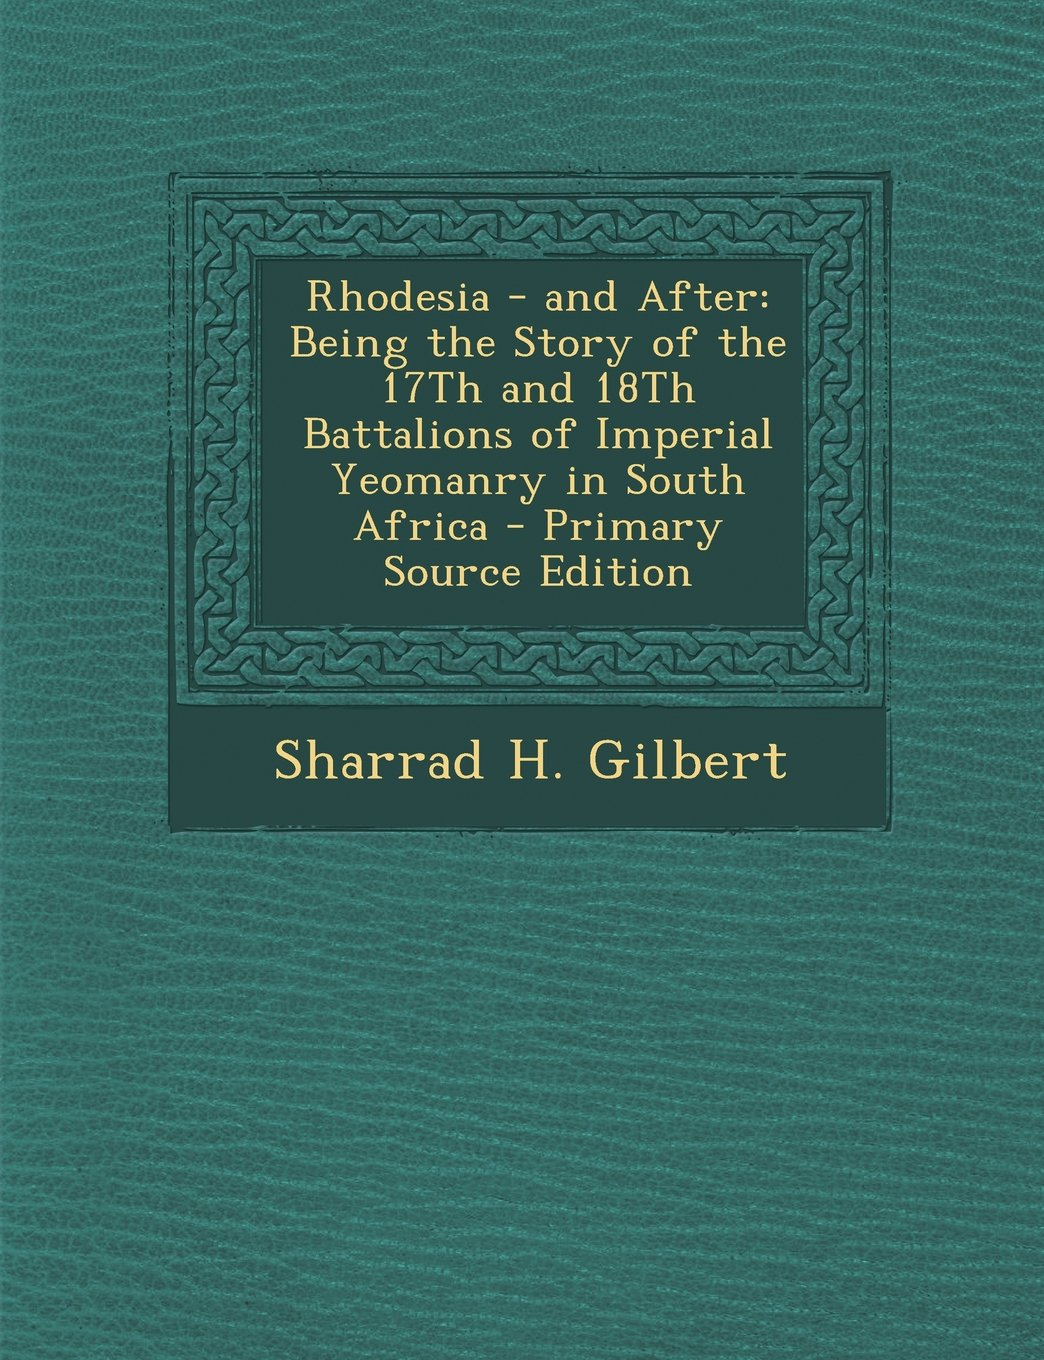 Download Rhodesia - And After: Being the Story of the 17th and 18th Battalions of Imperial Yeomanry in South Africa pdf